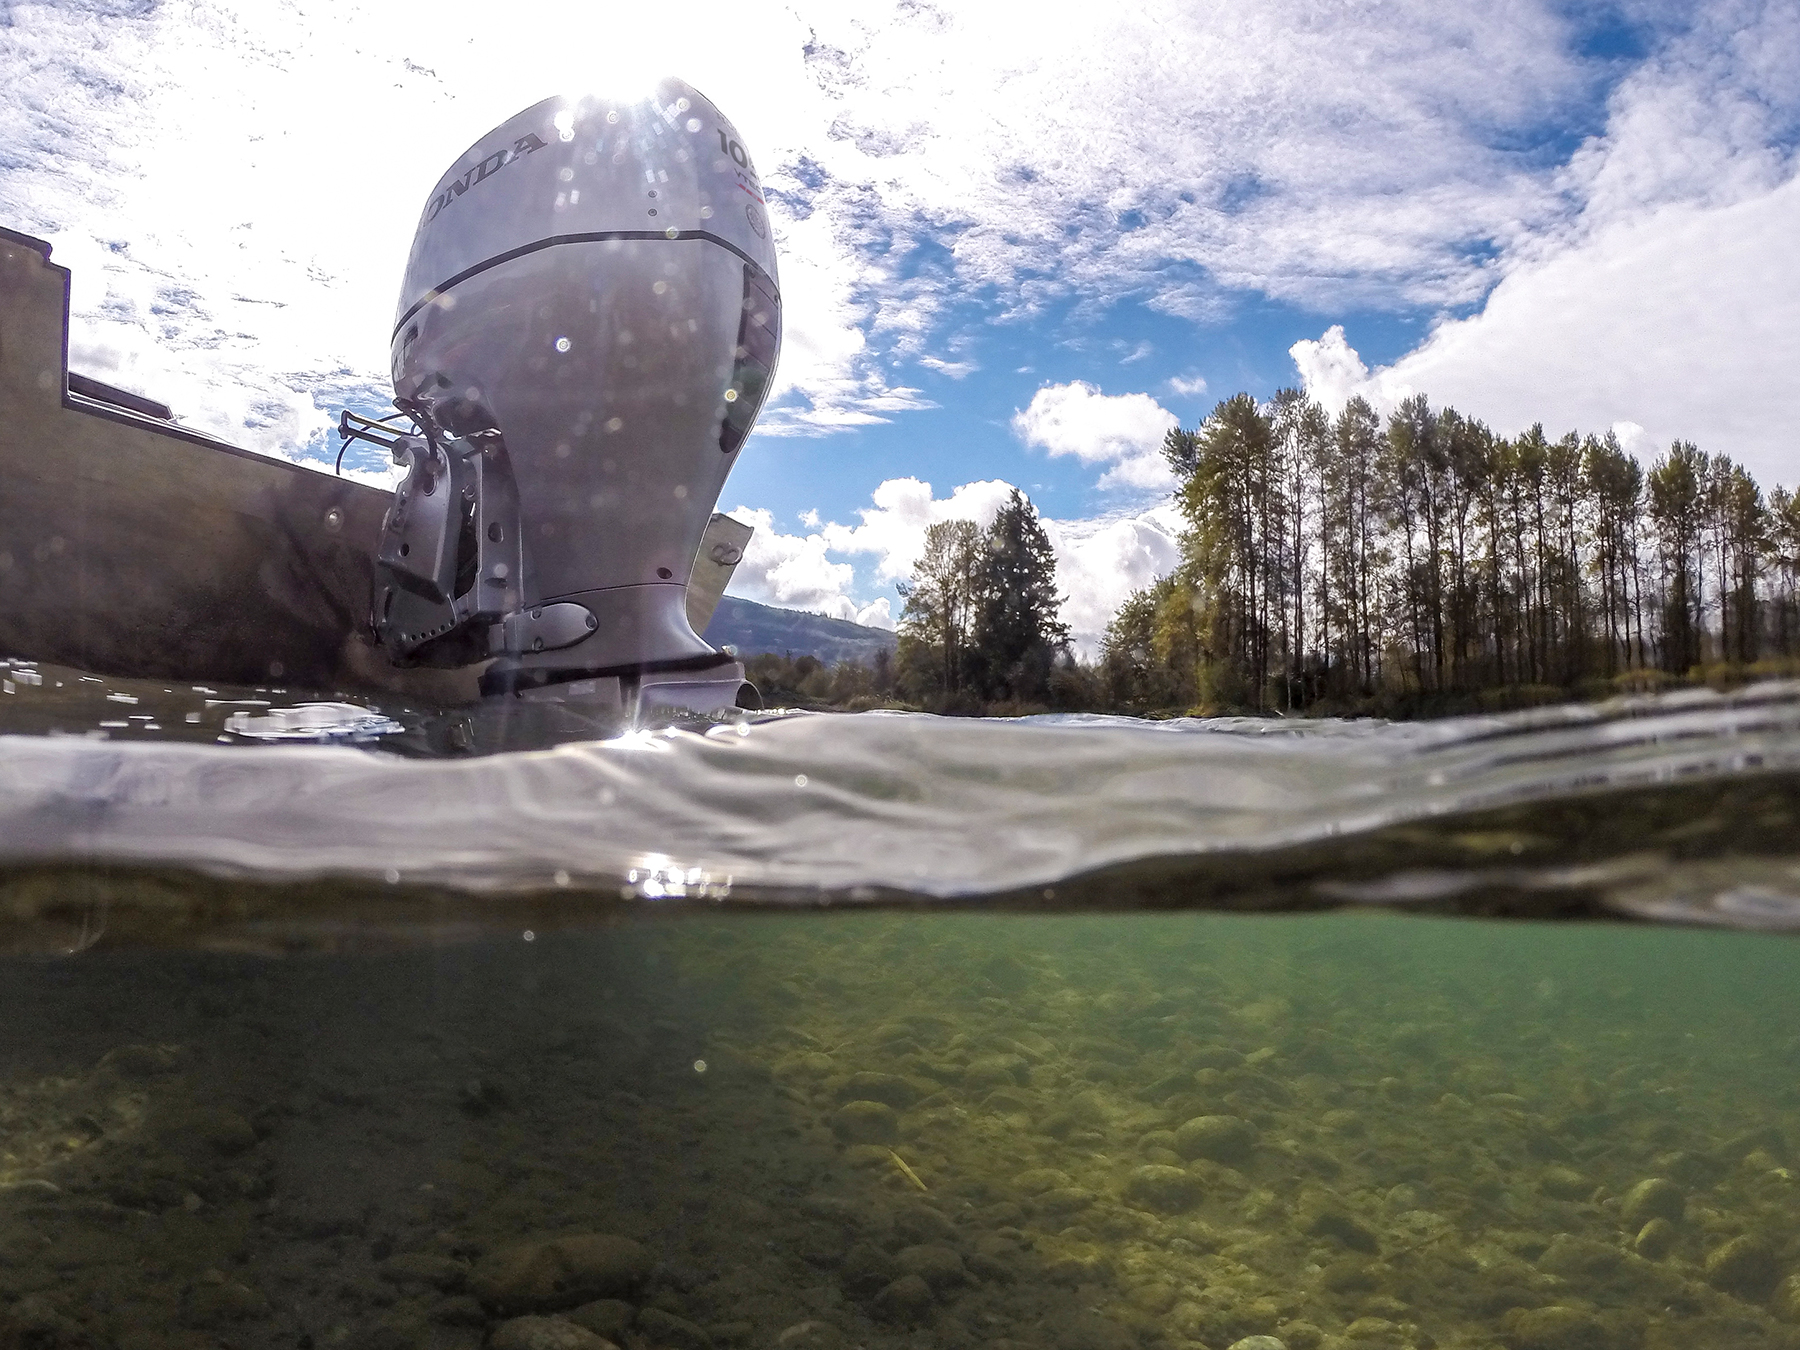 Underwater photo honda engine attached to back of small boat